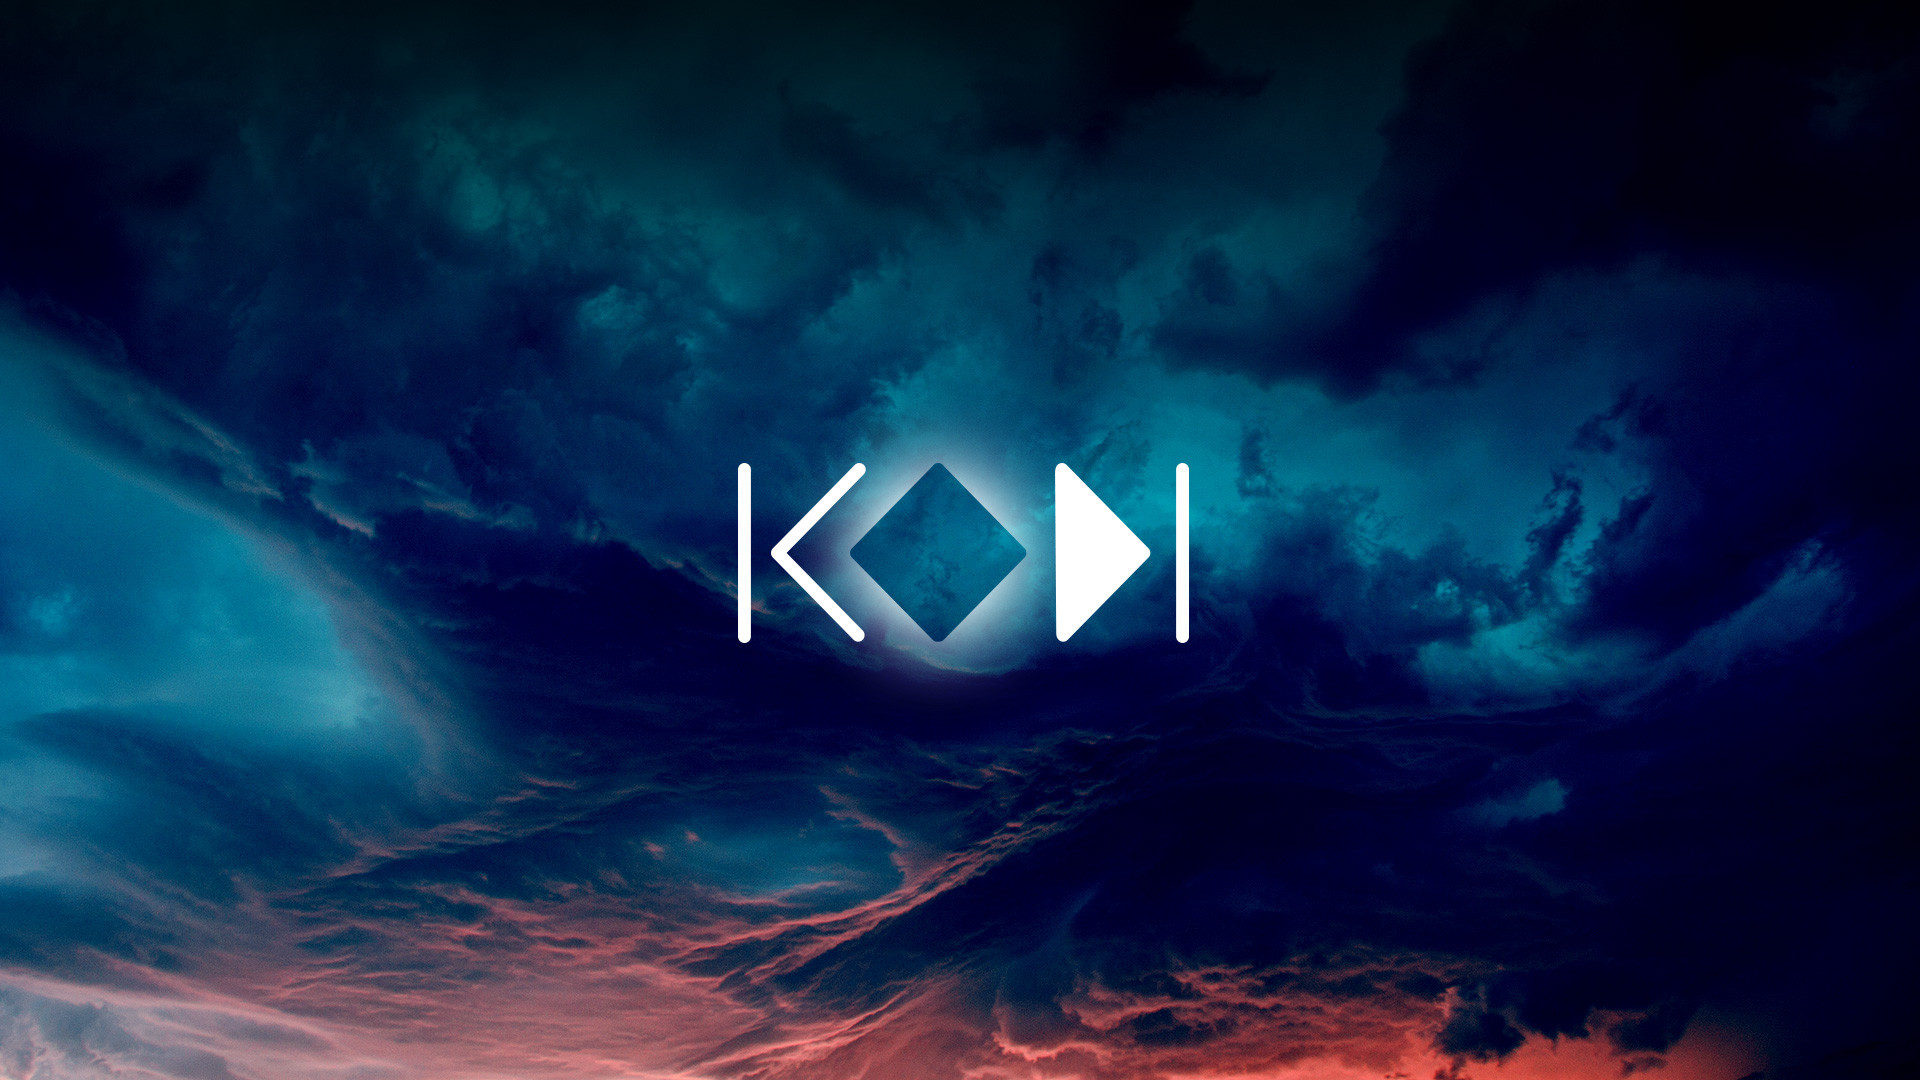 1920x1080 can provide you to hd wallpapers get gorgeous hd wallpapers kodi